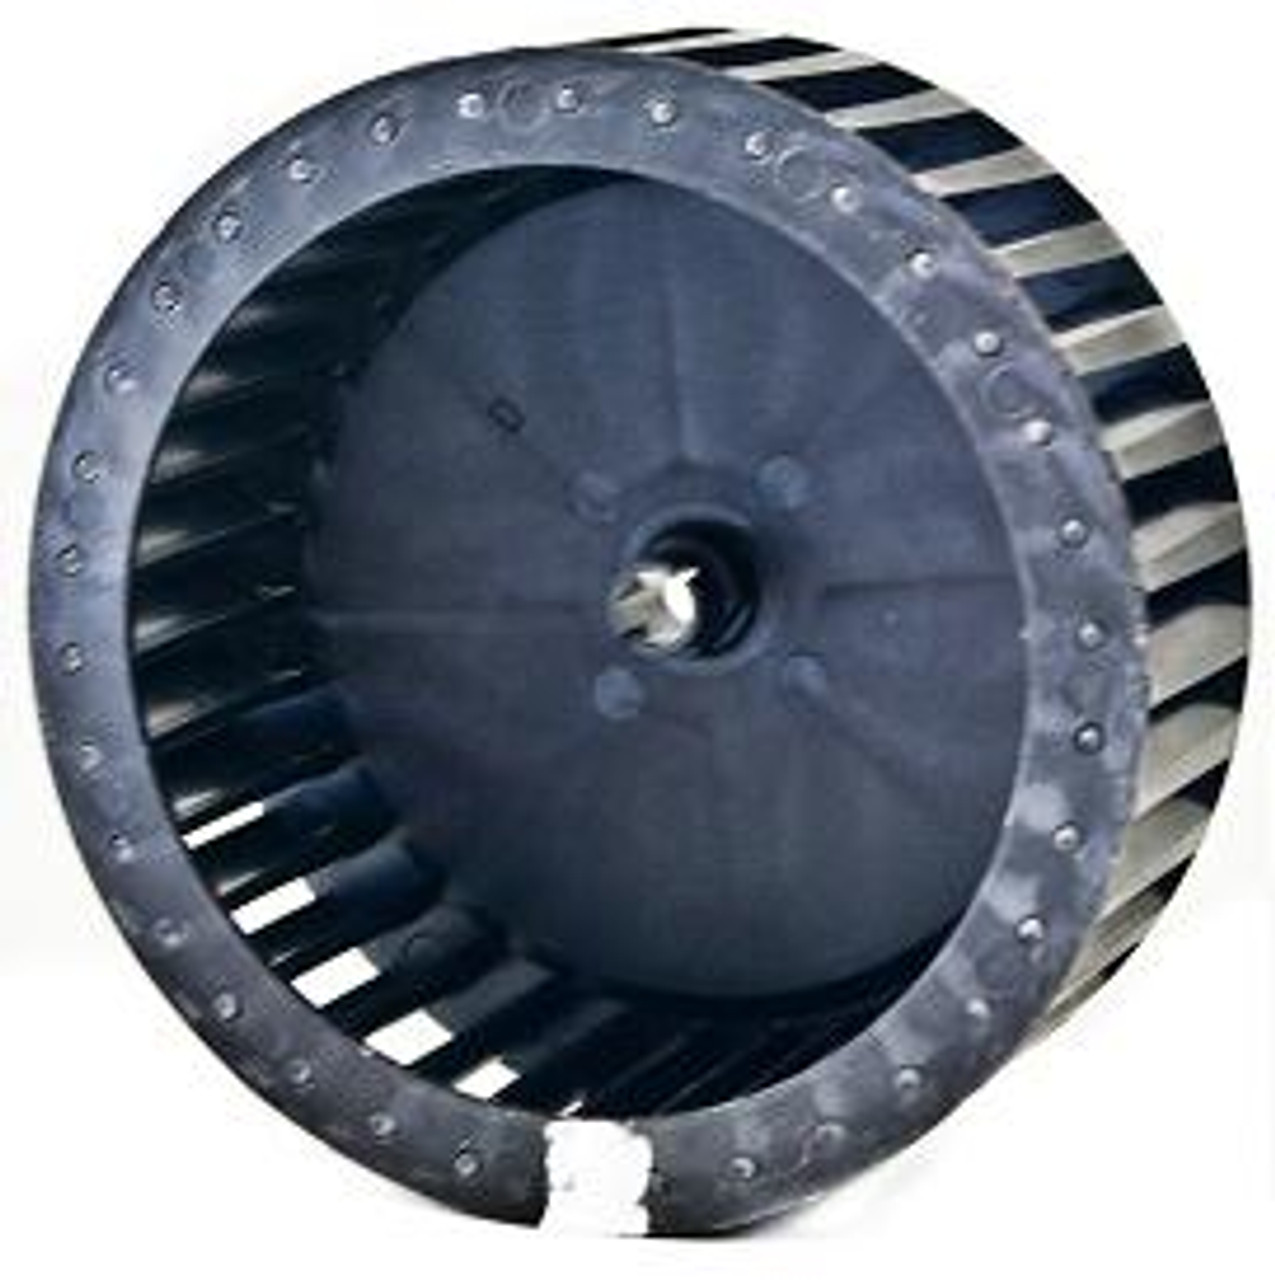 8710-4358 Blower Wheel 4-3/4